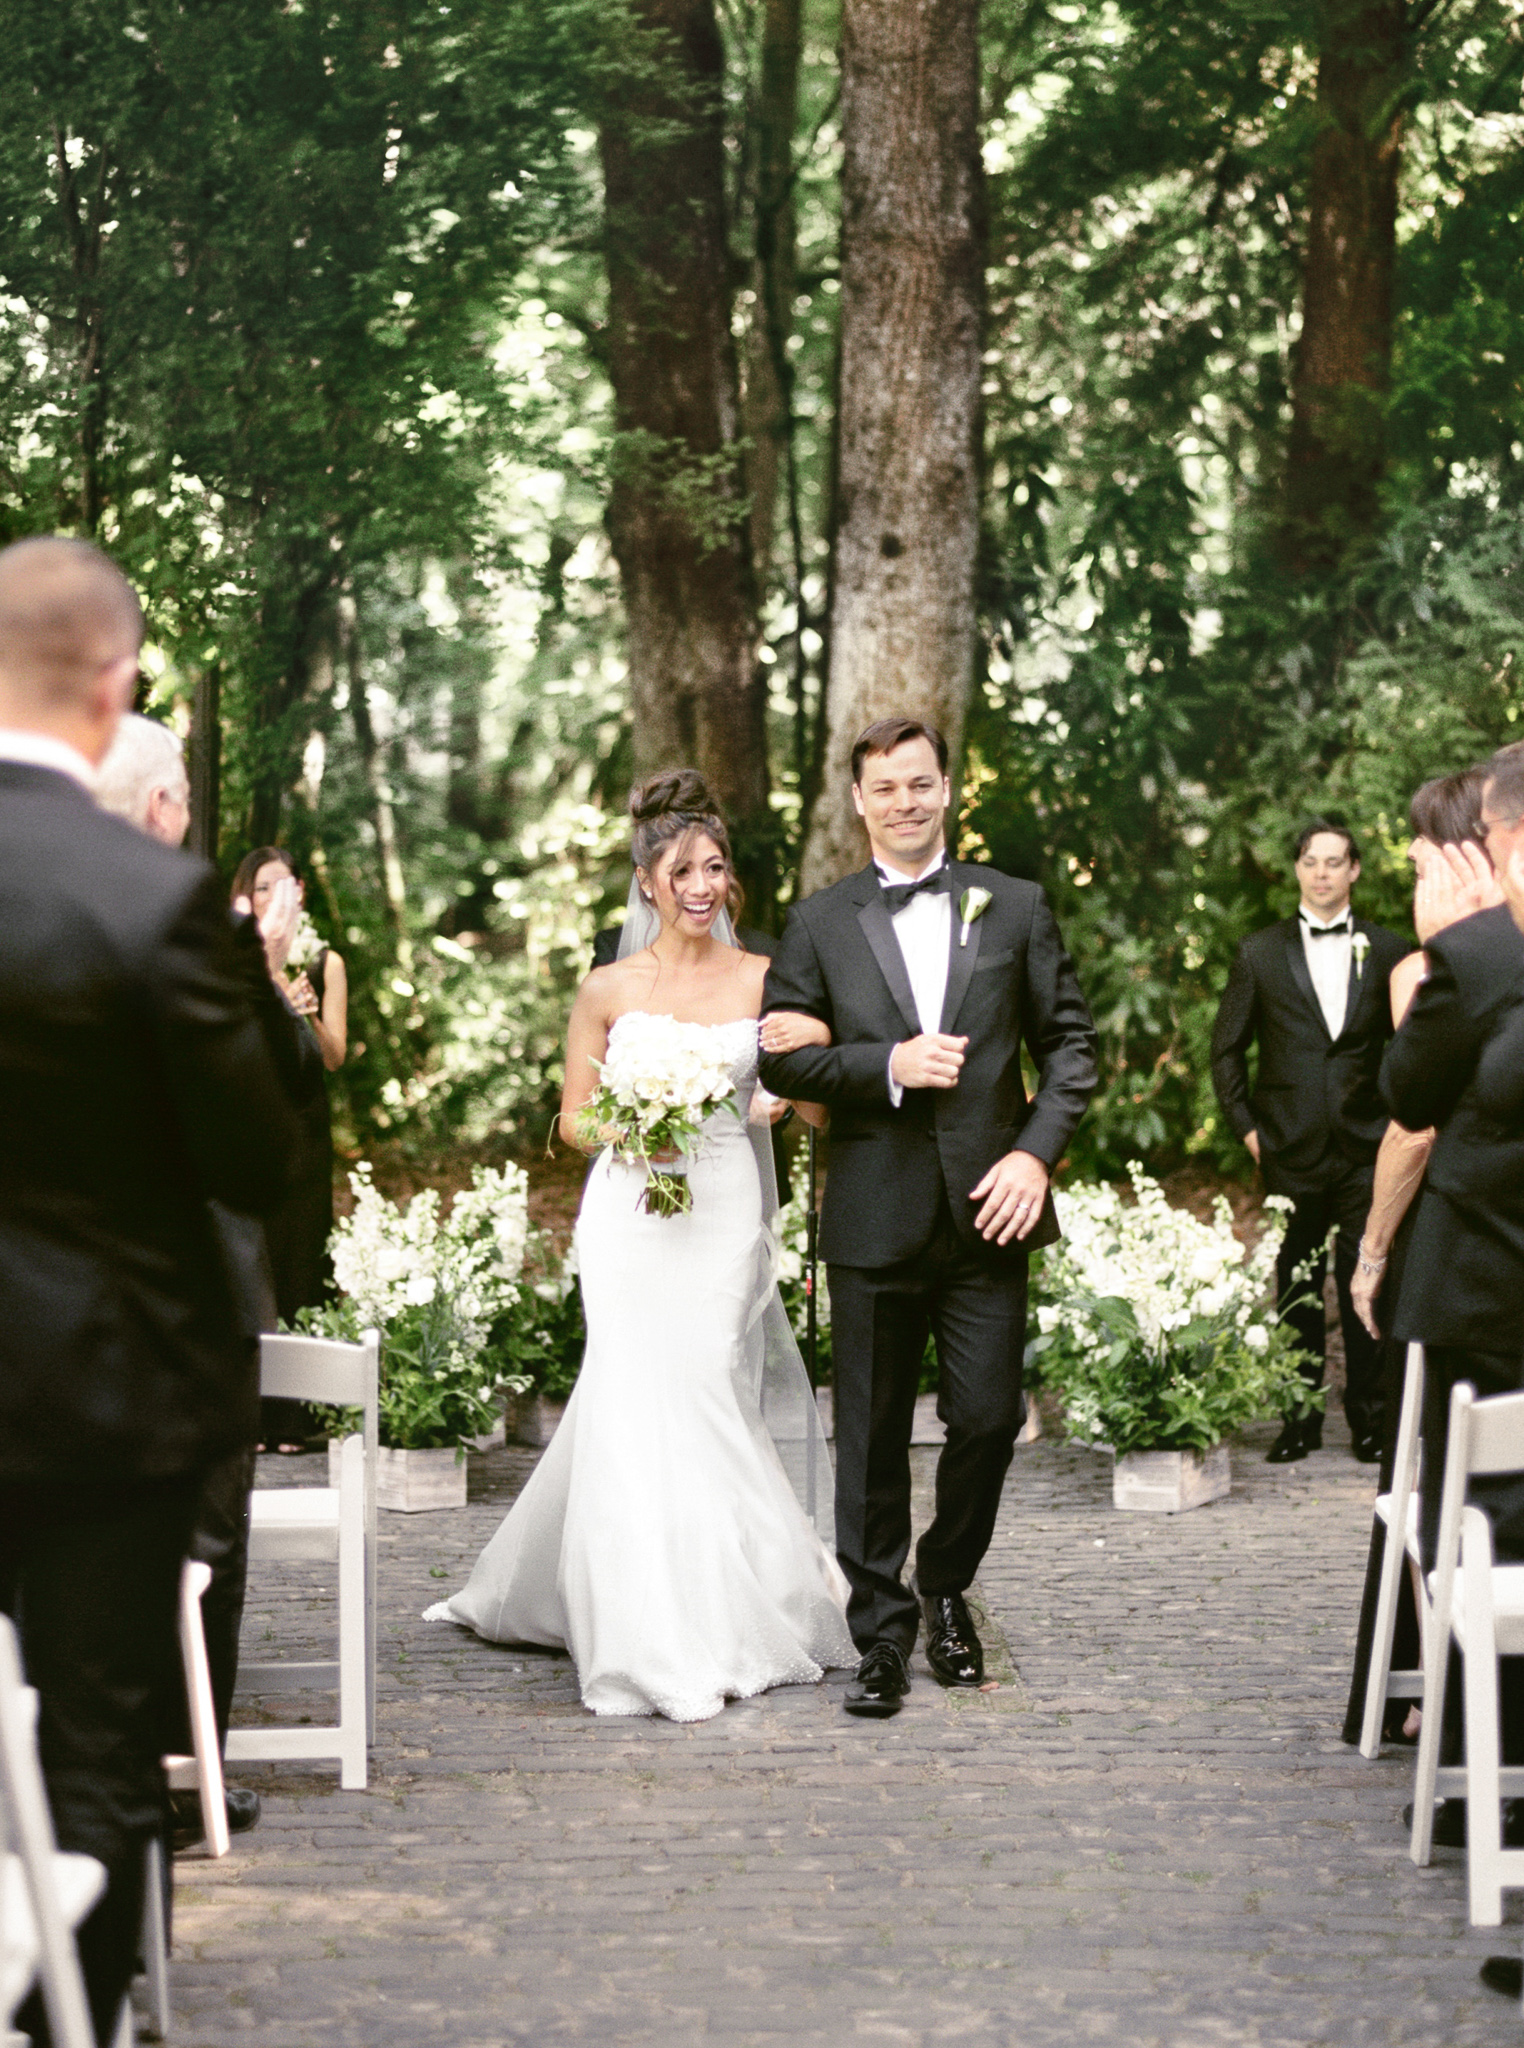 144OutliveCreative_Travel_Photographer_Videographer_Lewis&Clark_Oregon_Elegant_BlackTie_Destination_Wedding.jpg